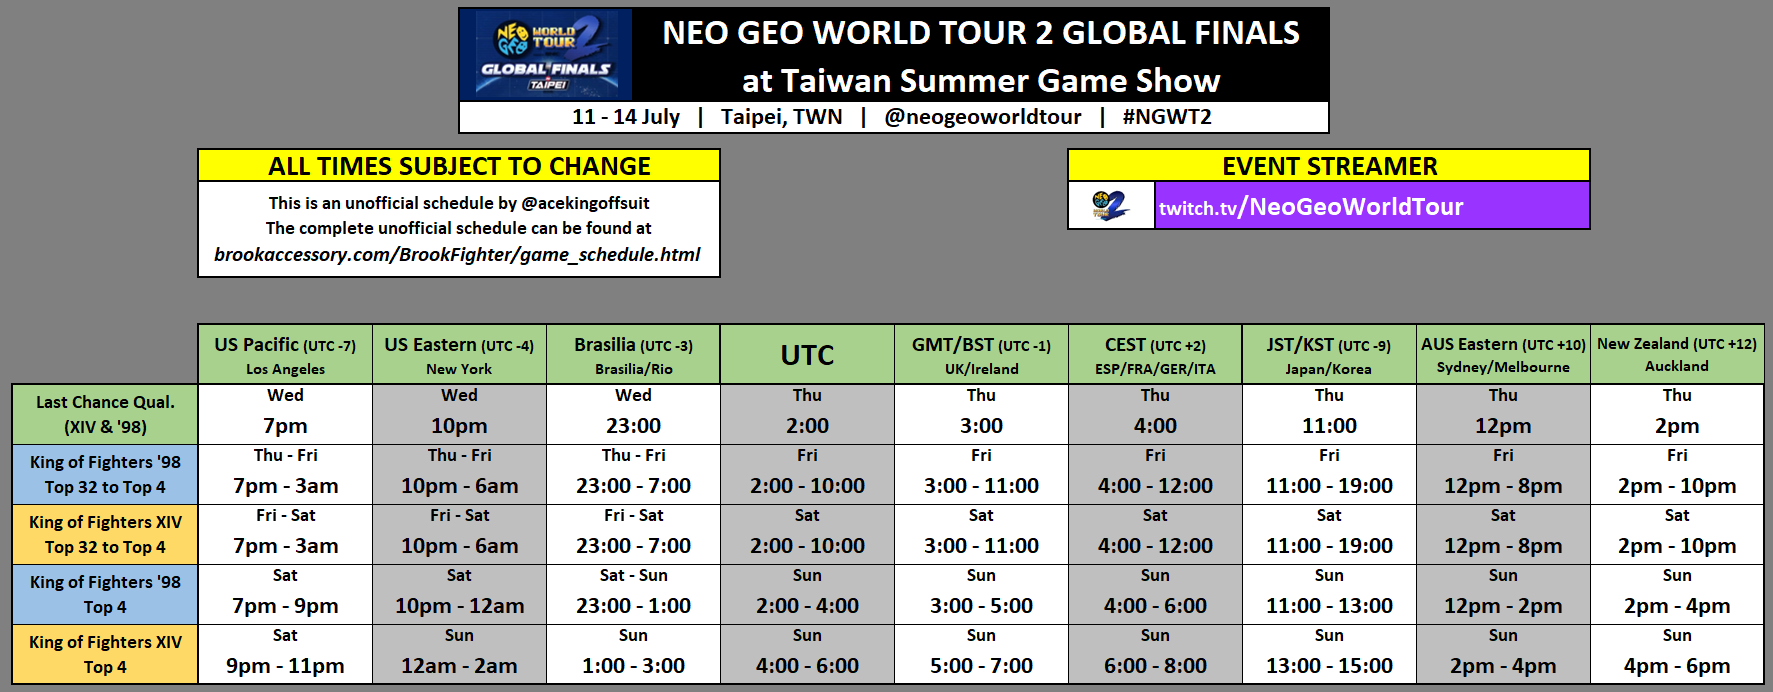 NeoGeo World Tour 2 Global Finals Event Schedule 1 out of 1 image gallery